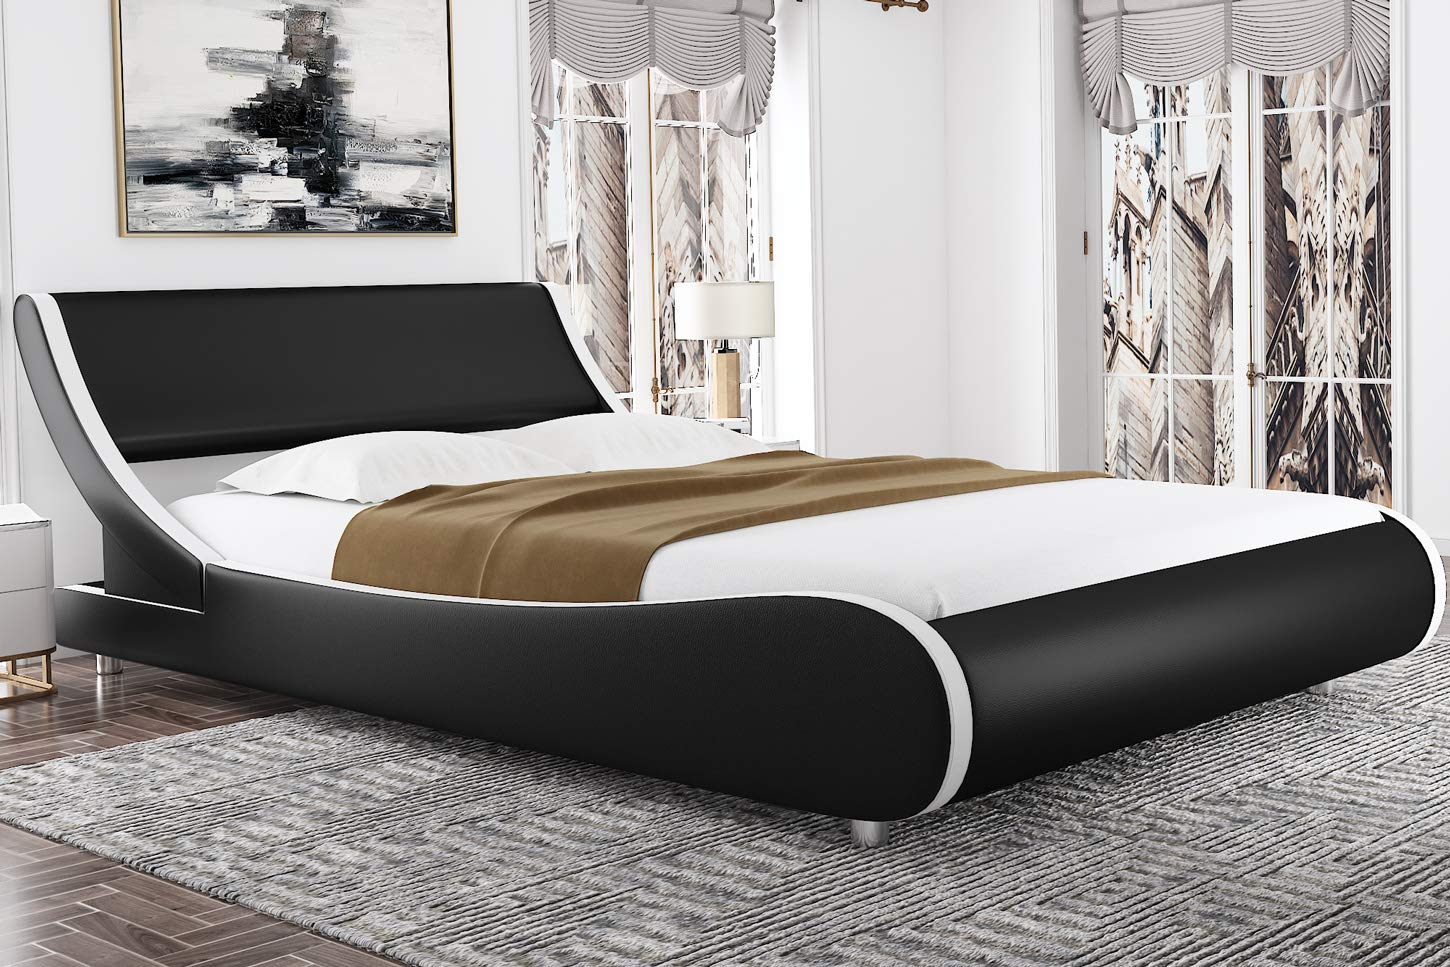 Amolife Modern Queen Size Platform Bed Frames with Adjustable Headboard,Mattress Foundation Deluxe Solid Faux Leather Bed ...